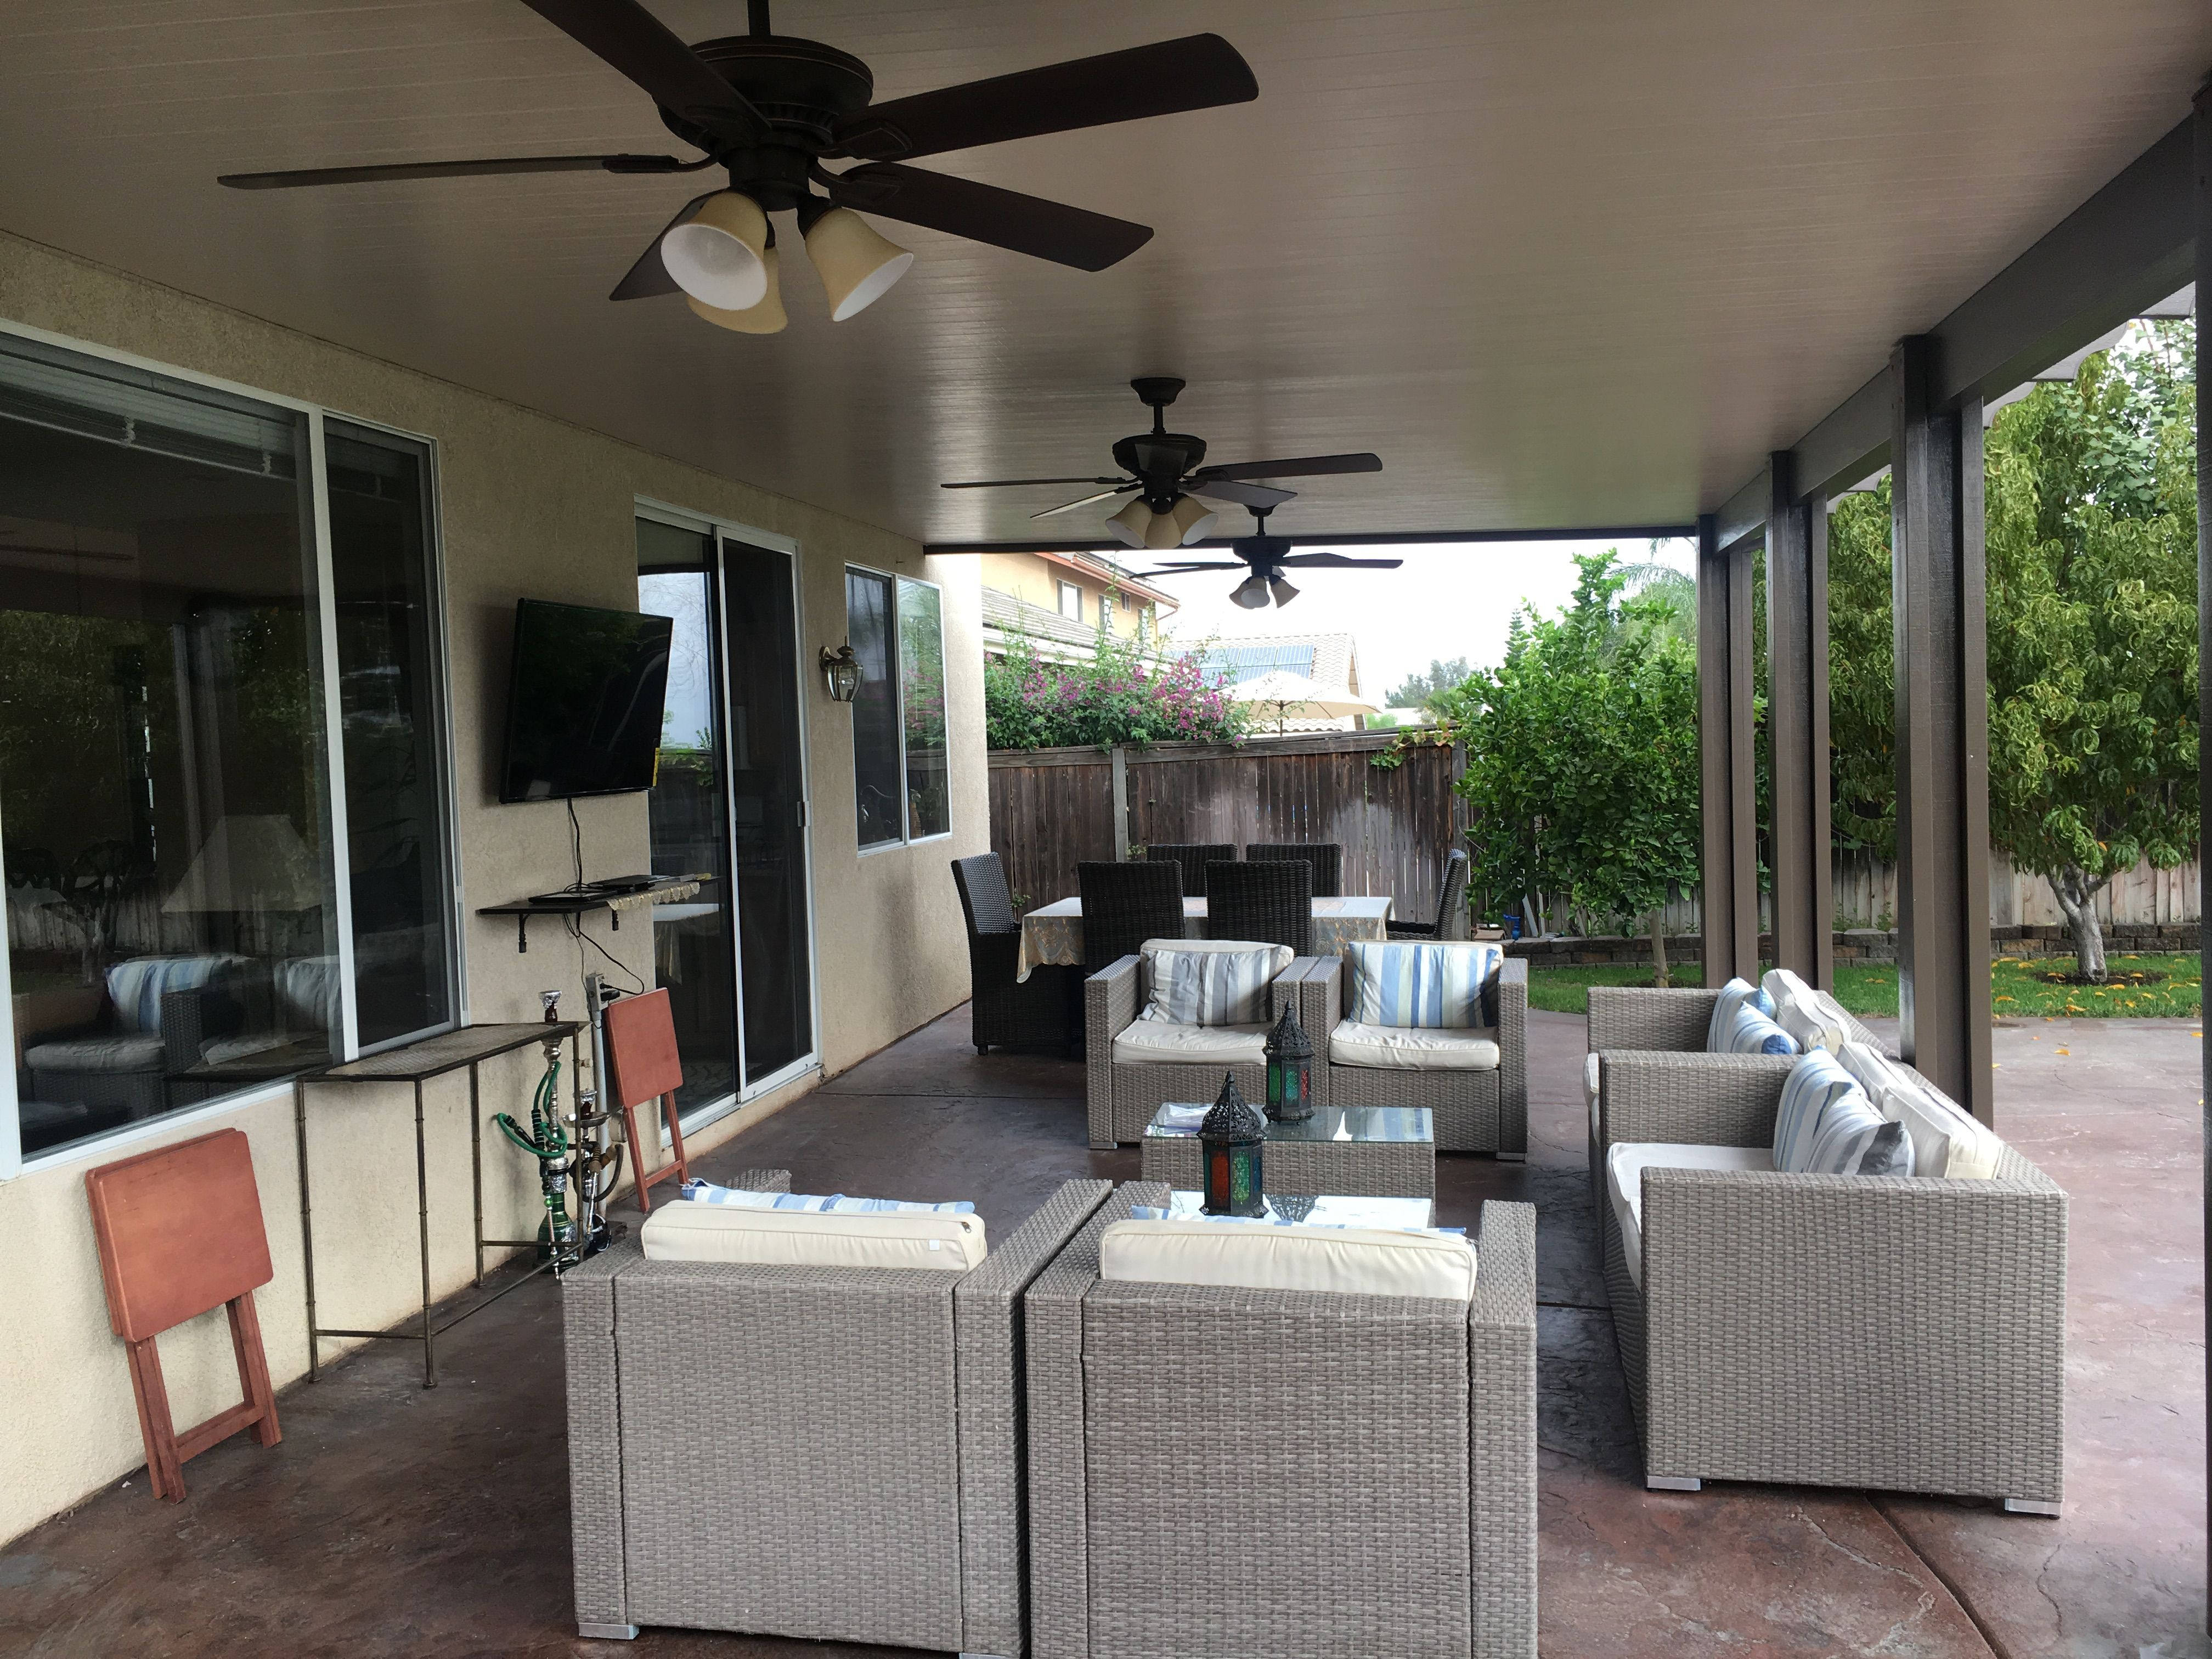 Alumawood Patio Cover Solid Top Three Ceiling Fans Electrical